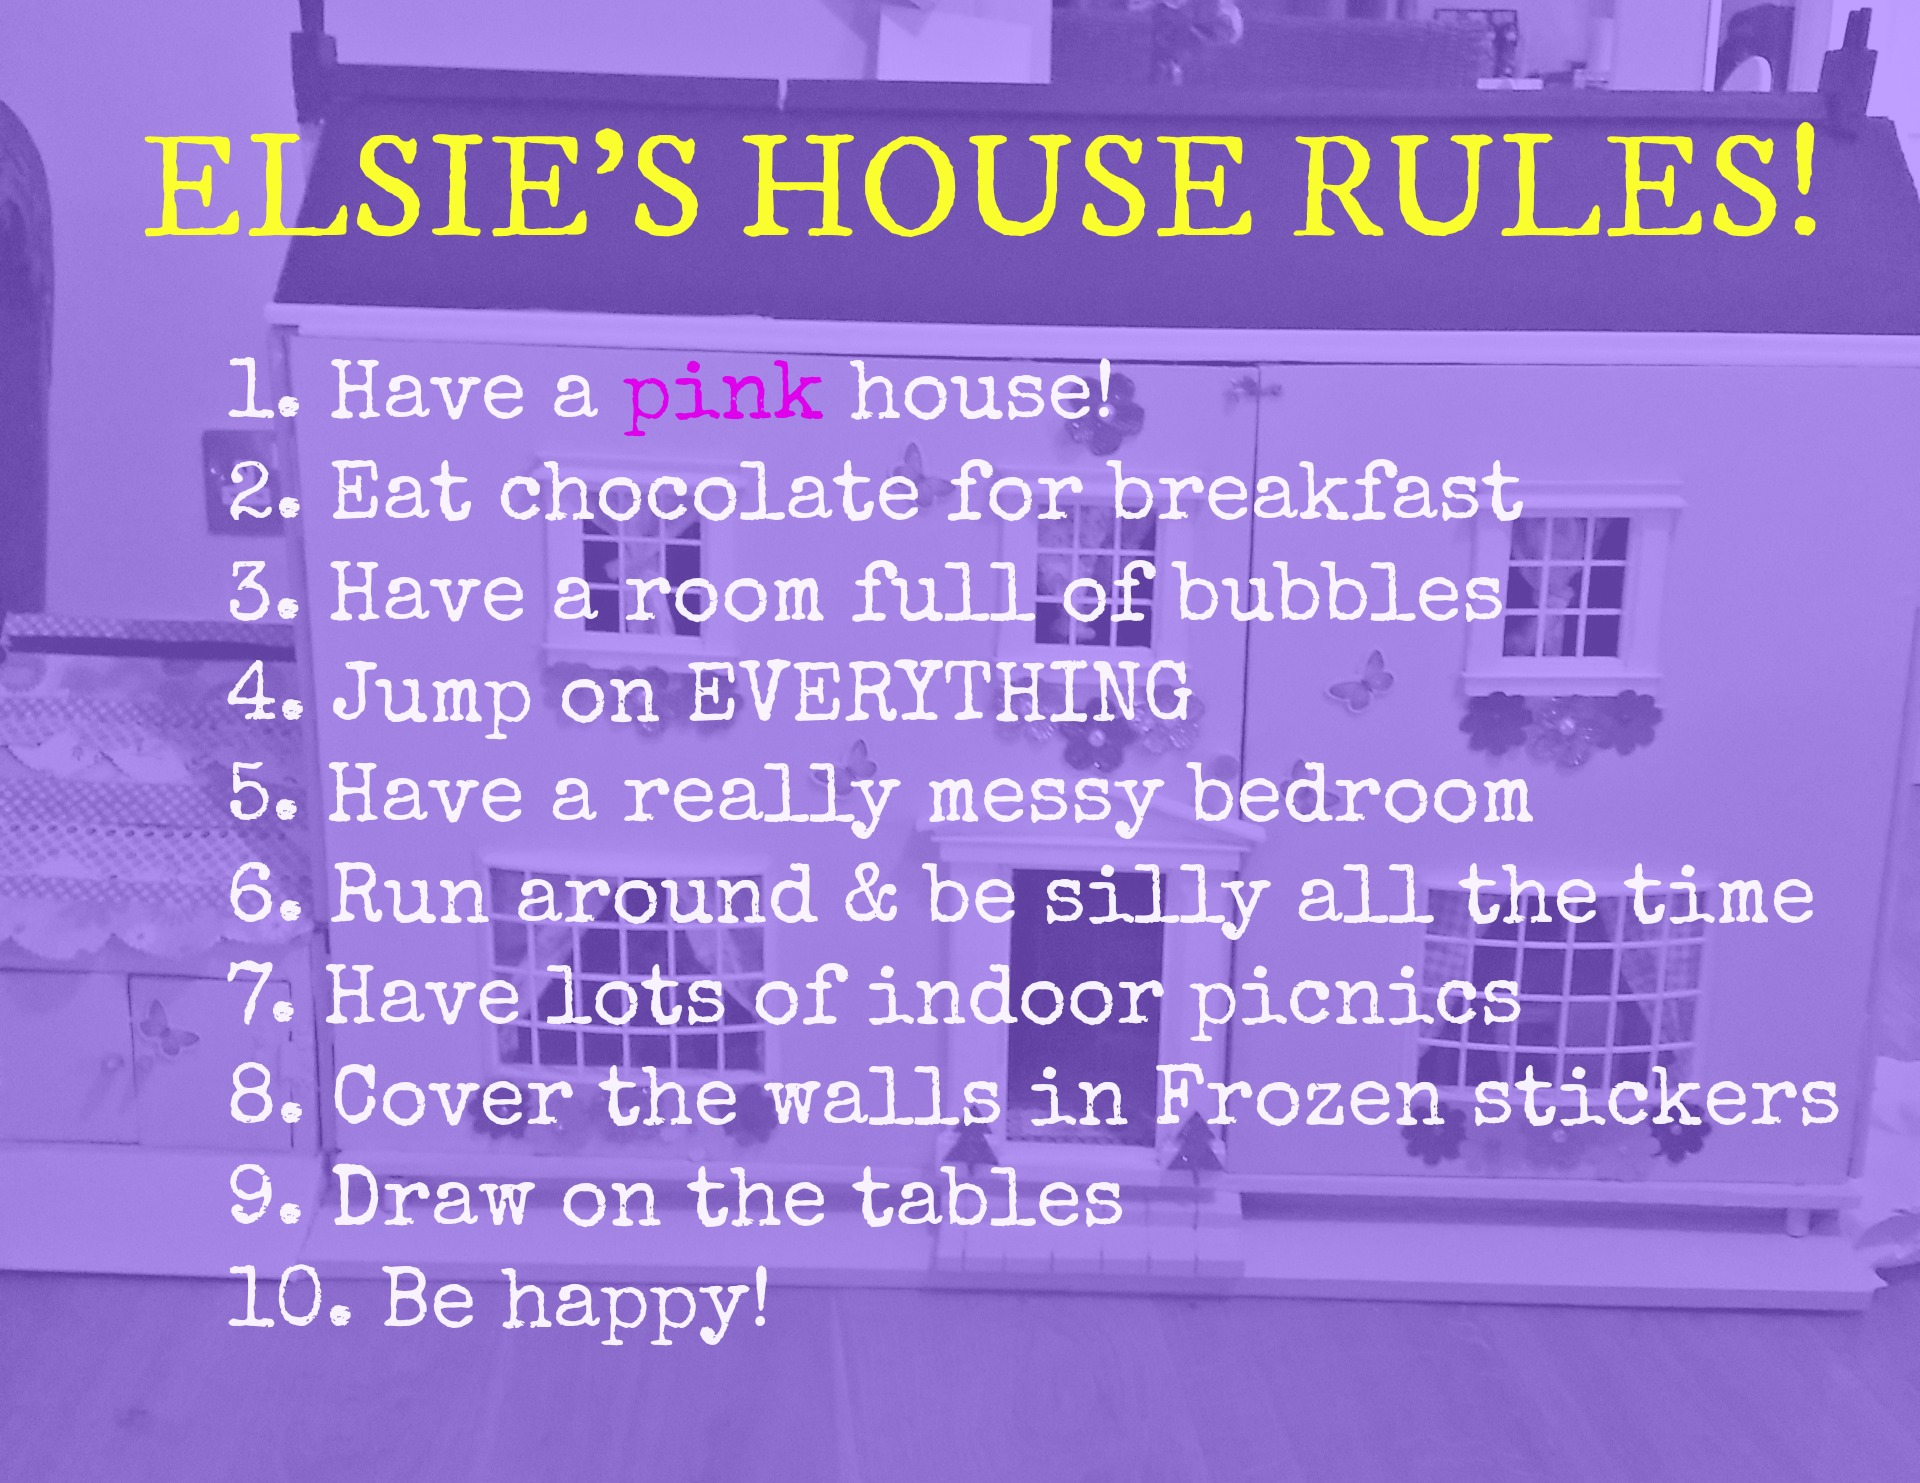 Elsie's house rules